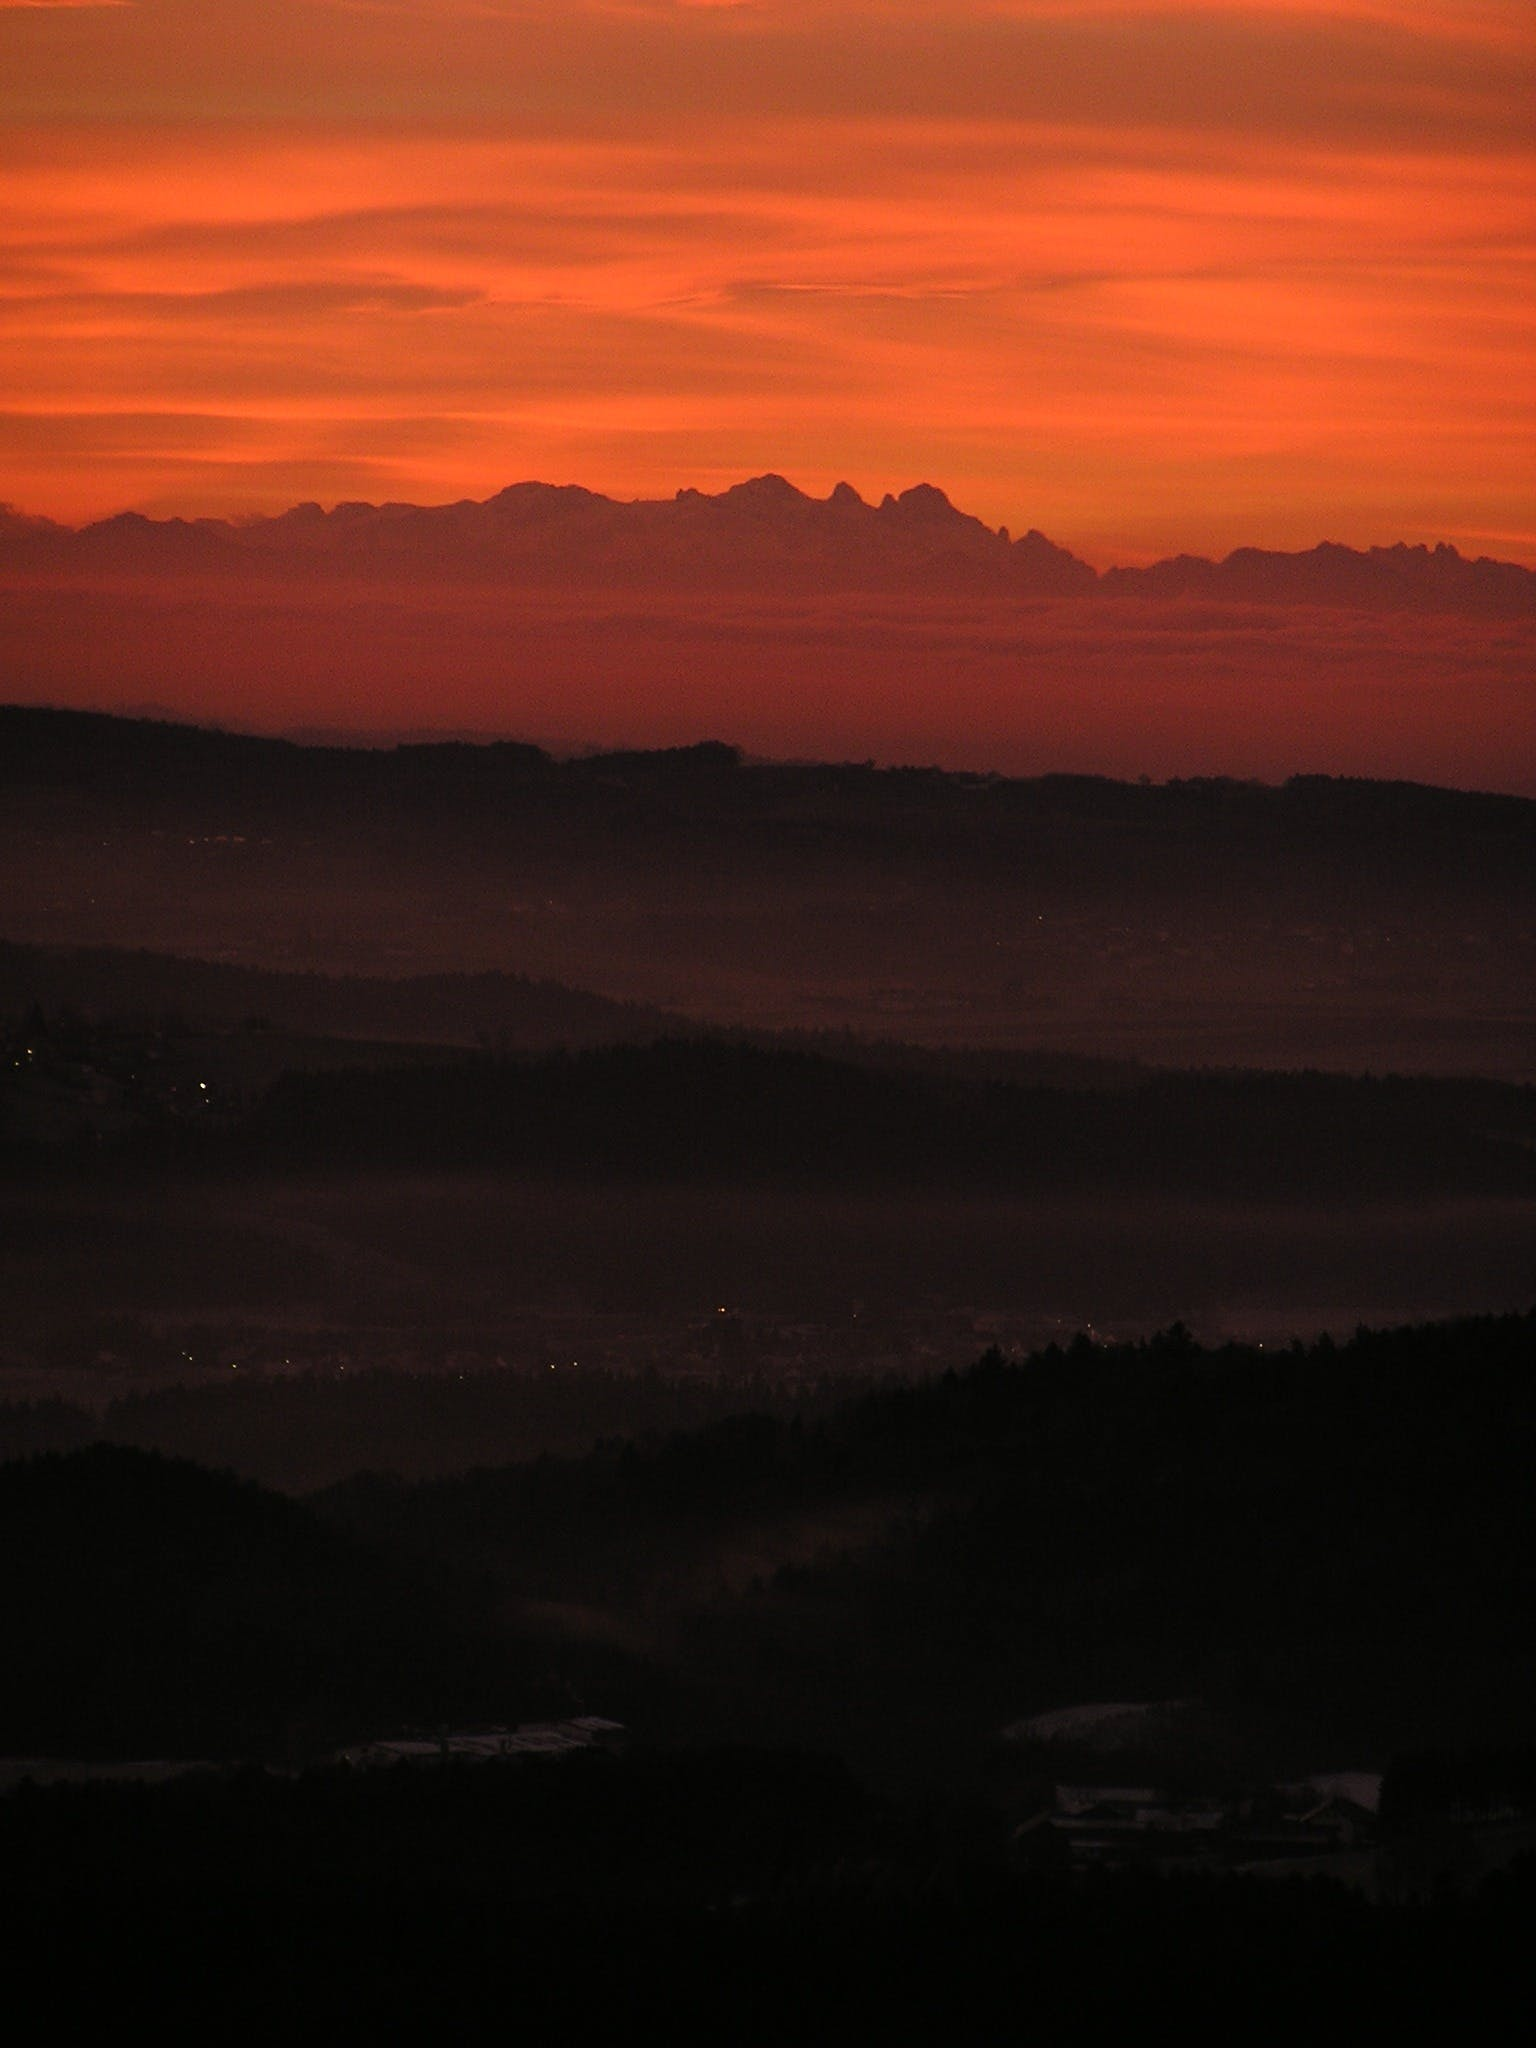 Black Mountains during a Reddish Sky